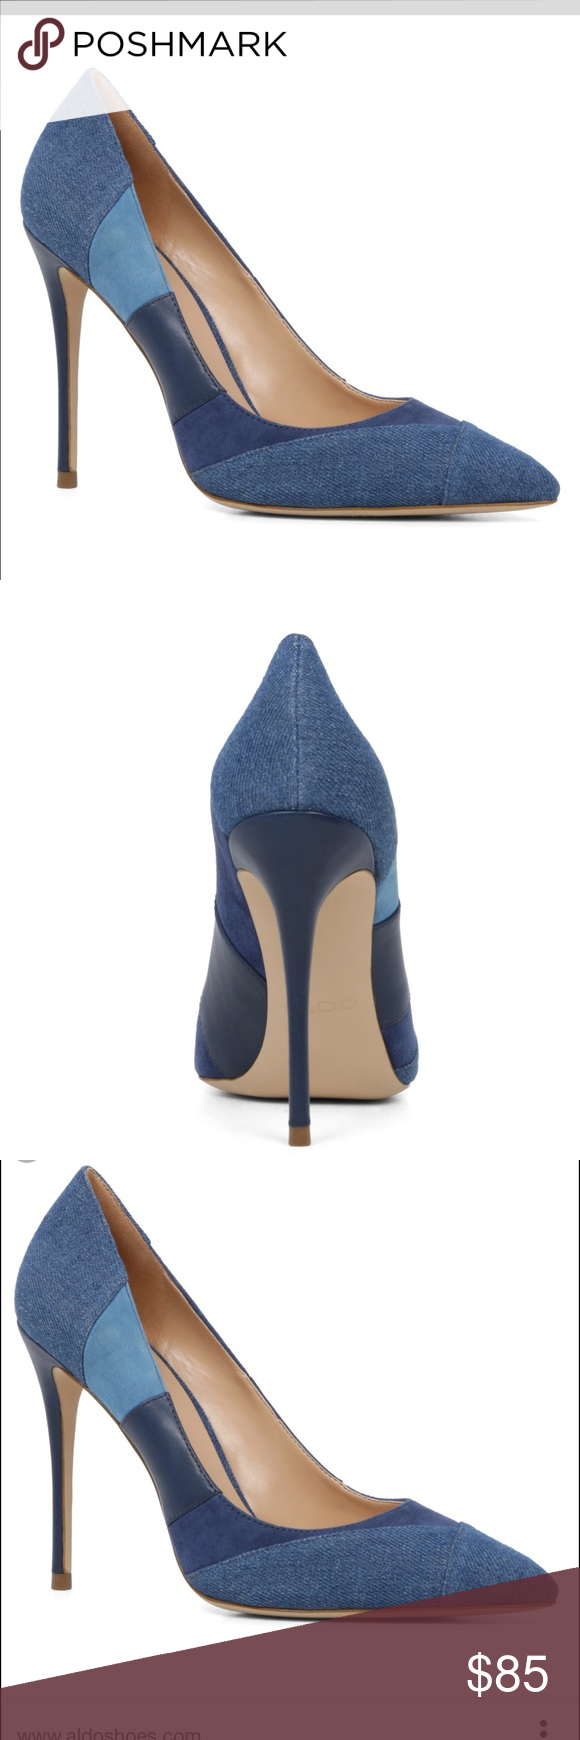 39af19f71f74 Shoes Aldo Denim Pumps Kessi Brand new - great transition shoe brand new  with box patchwork shades of denim and blue ALDO Shoes Heels